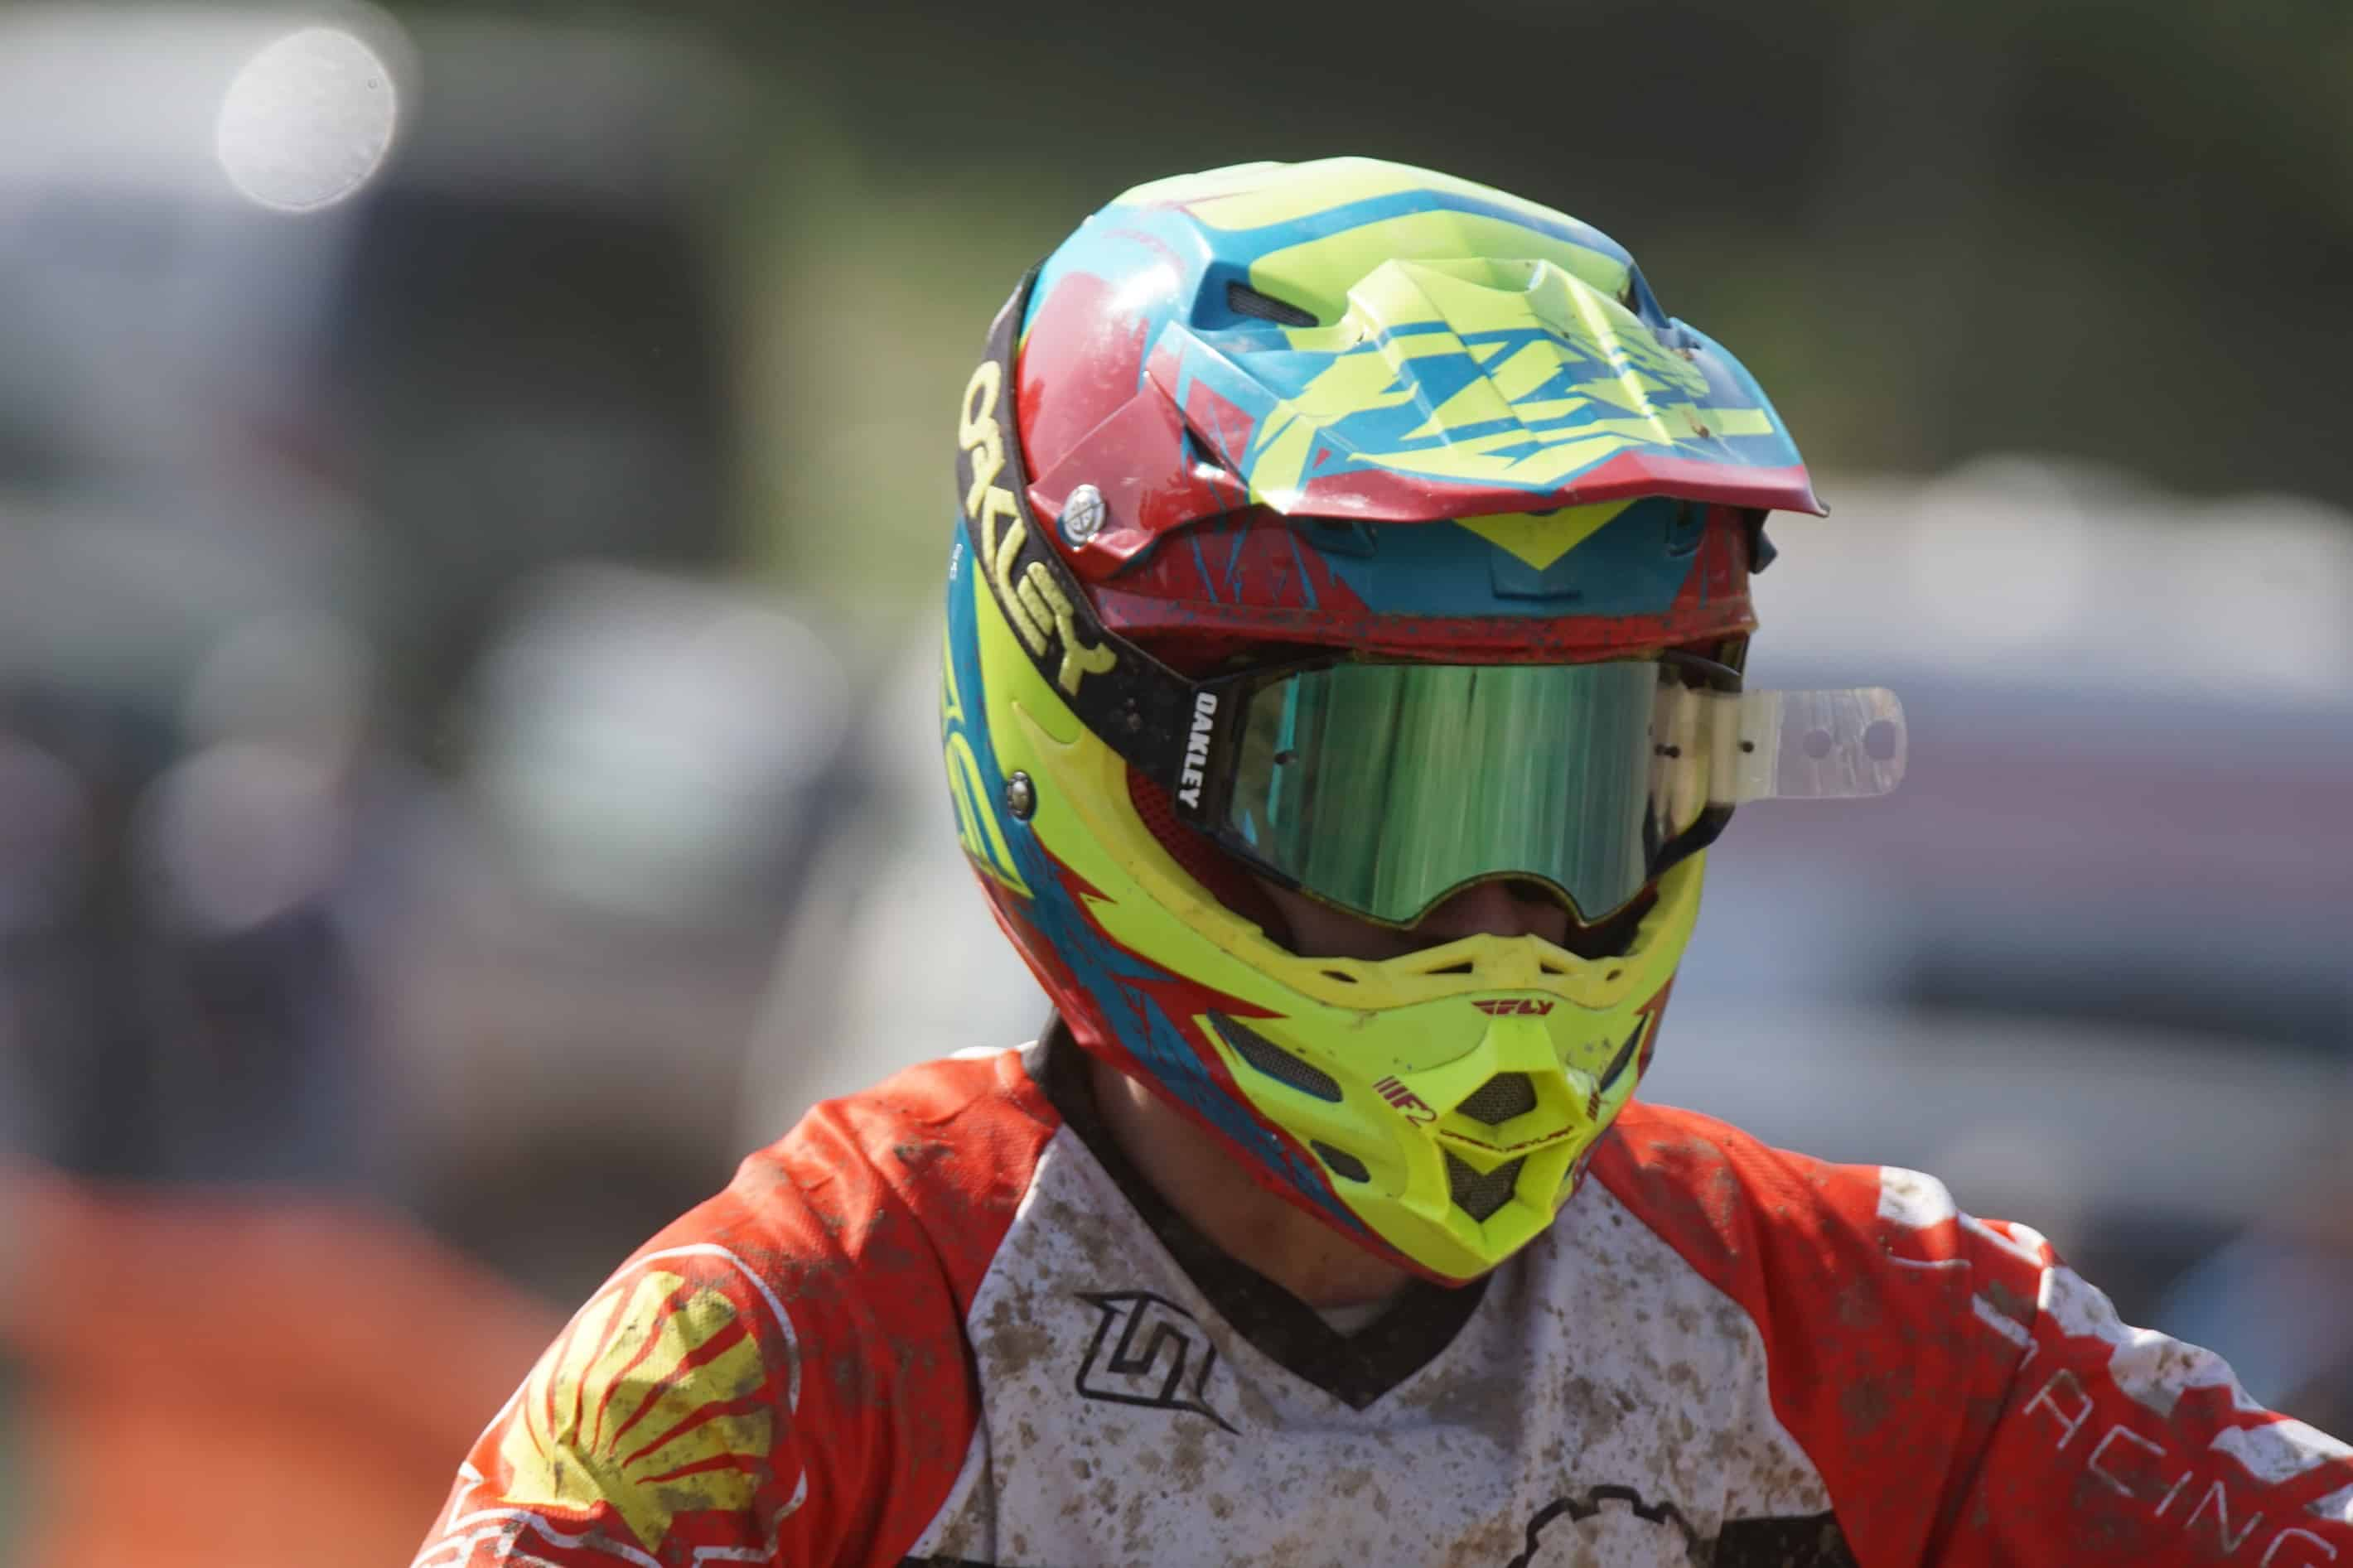 DSC 791_Moto Cross Sittendorf Teil1 am 29.04.2018